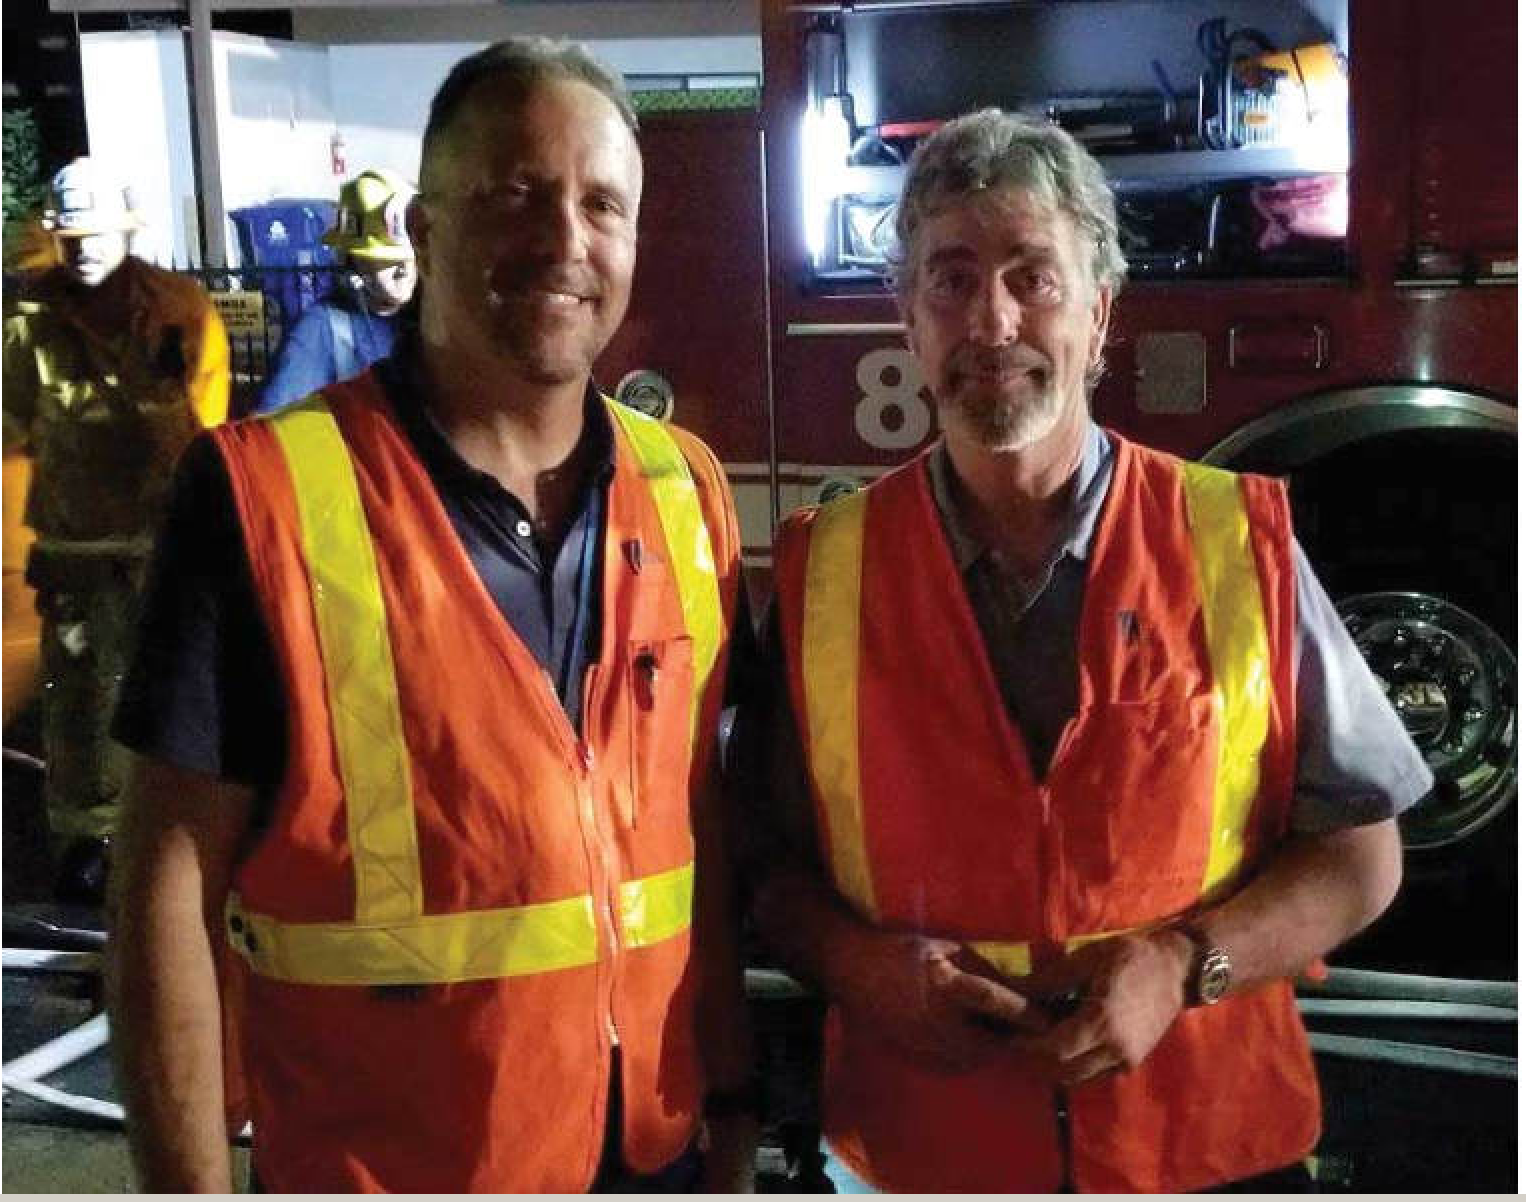 Field Team Lead Mike Ciani, left, and Jeff Catton. (Photo courtesy of SoCalGas).